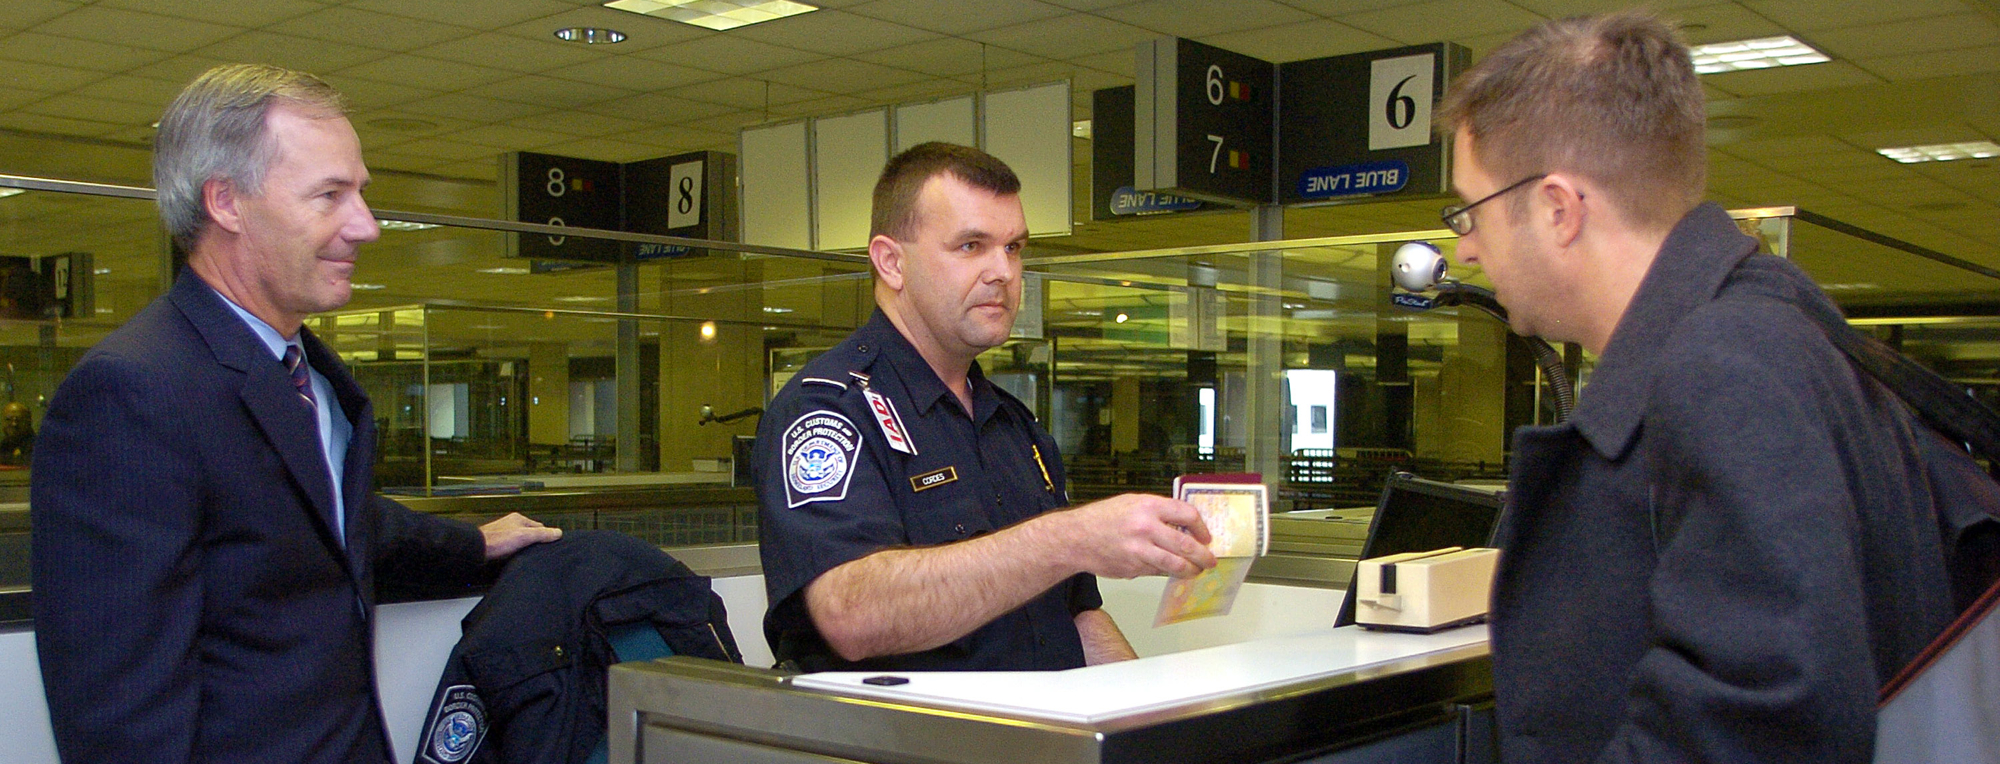 Airport Security Staff are Going to Hate Wearable Cameras